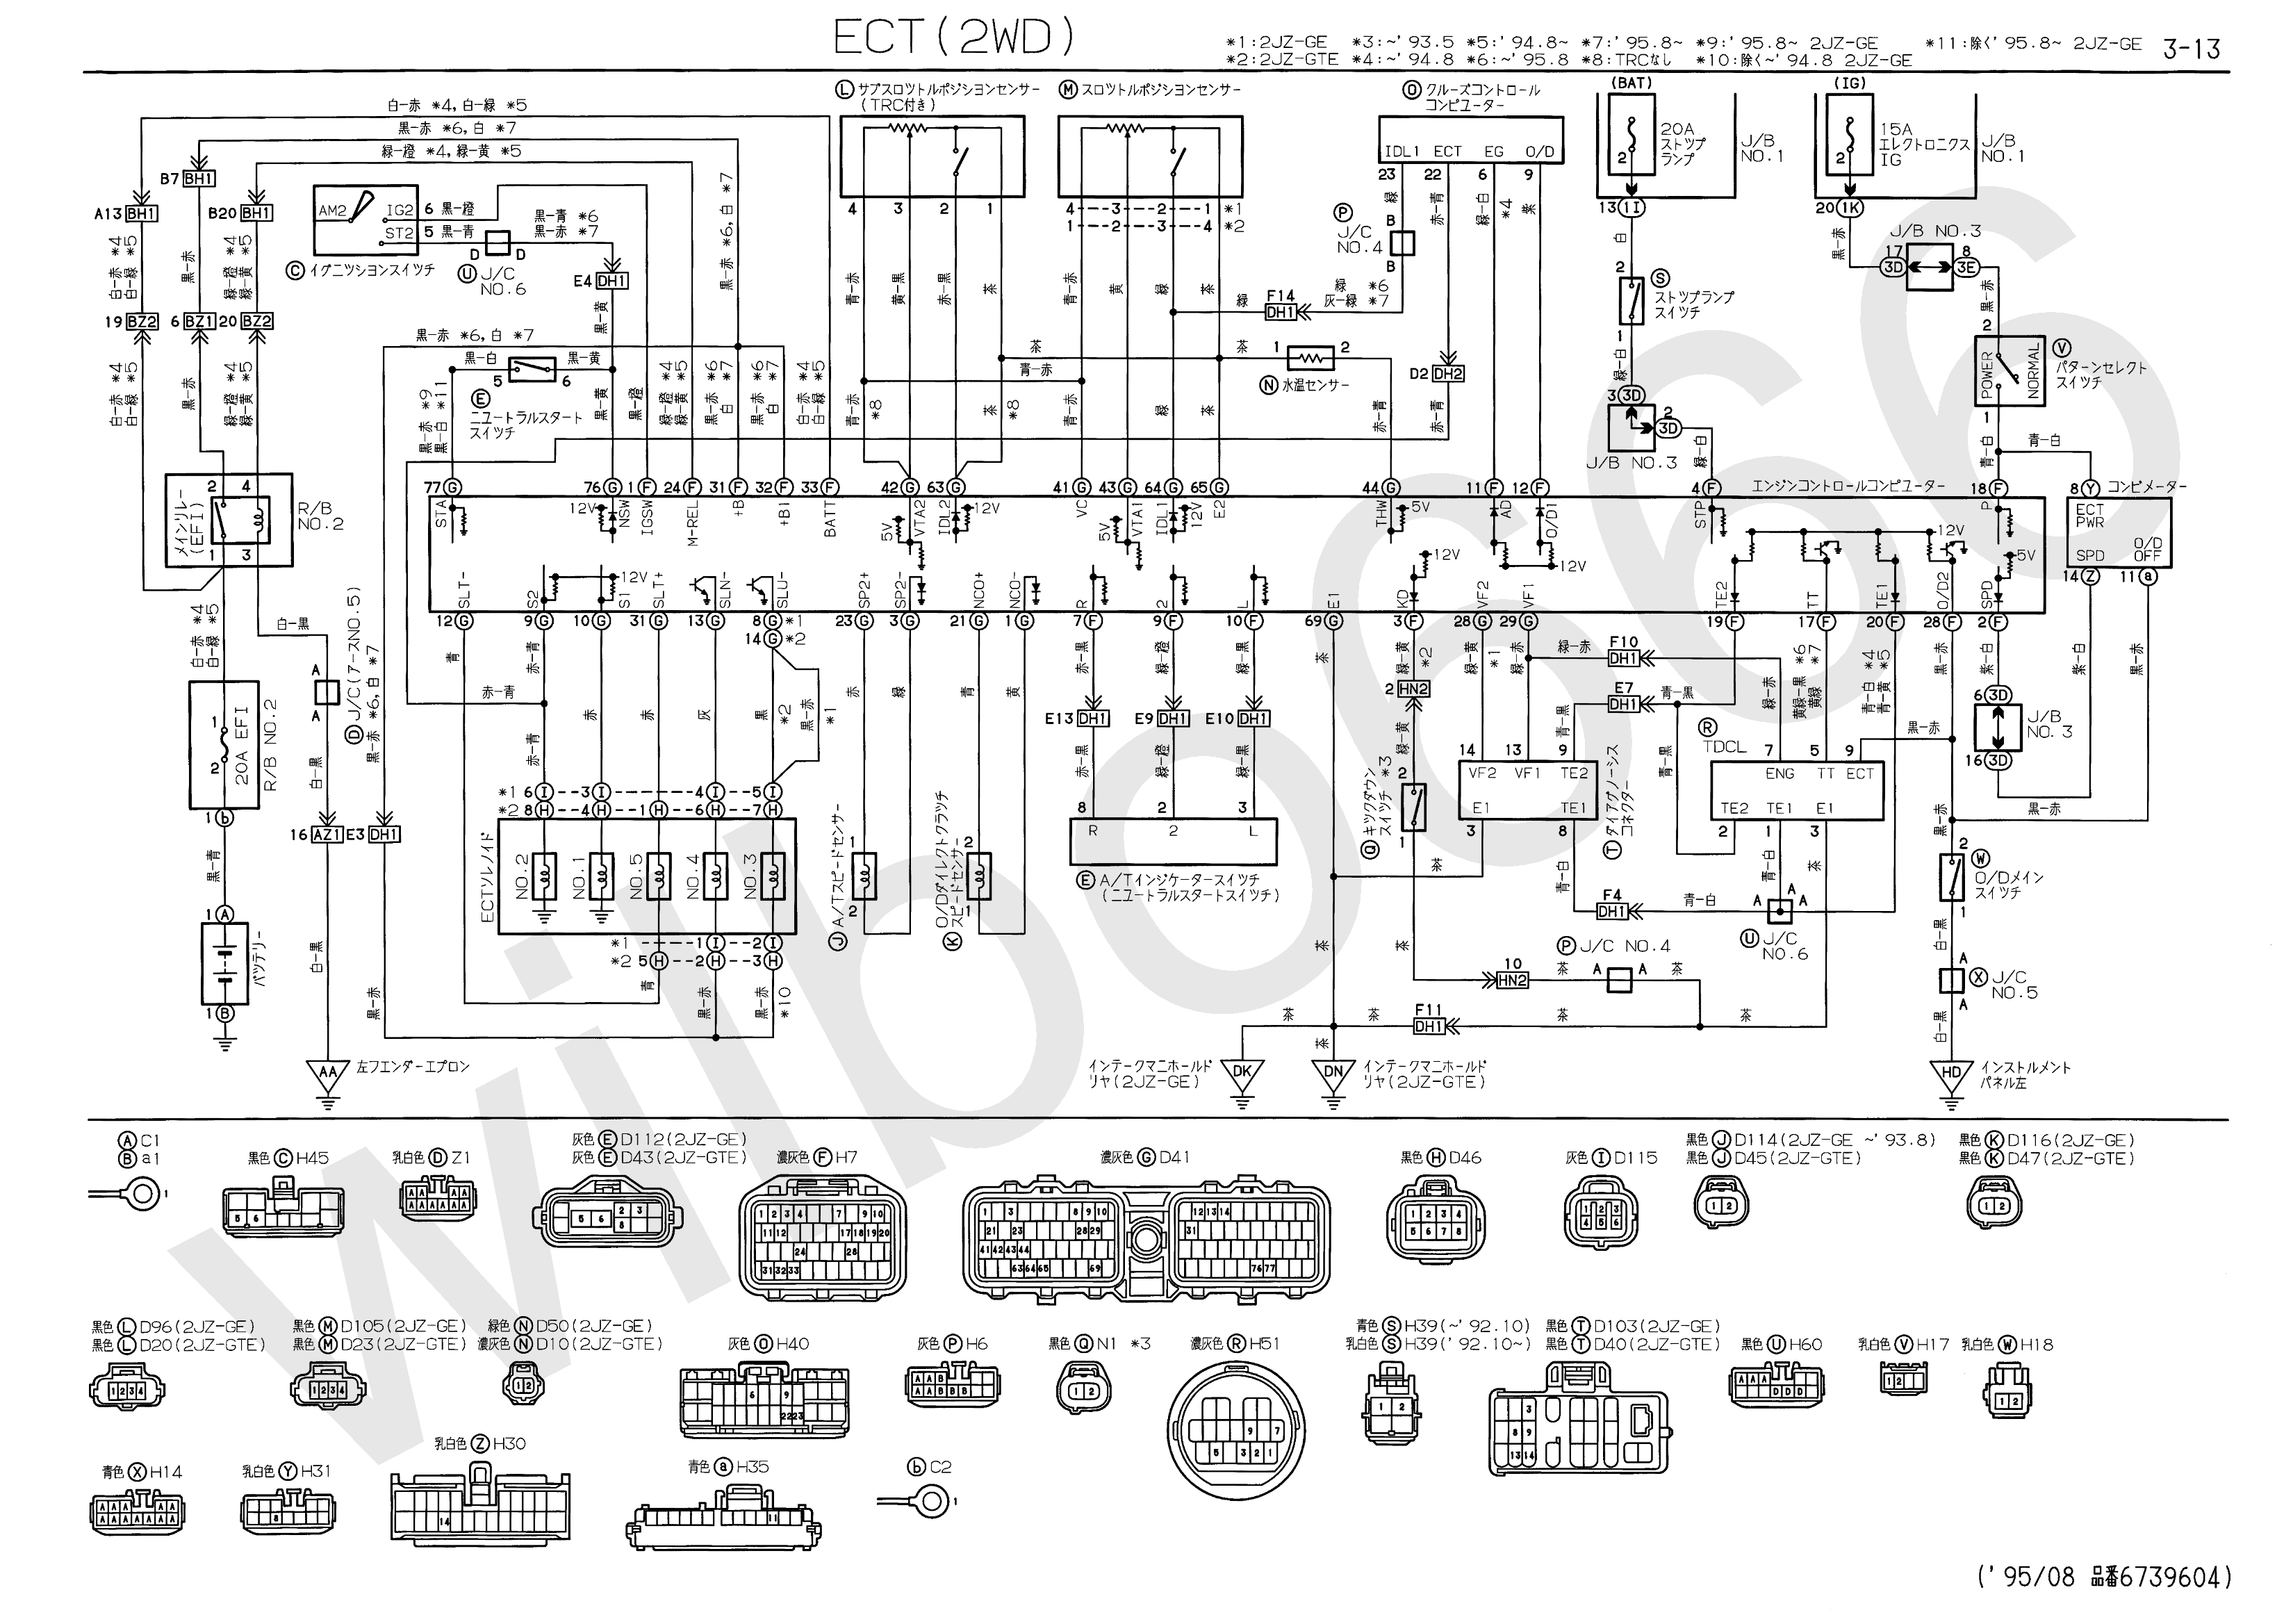 Car Stereo Wiring Diagram 2014 Kia Forte further 2009 Chevy Cobalt Fuse Box Location additionally 2JZ GTE 20JZS147 20Aristo 20Engine 20Wiring as well 2011 Lincoln Mkx Fuse Panel Diagram together with 7sxxf Volvo S60 T5 2002 Volvo S60 T5 I Looking Schematic. on 2011 ford radio wiring diagram